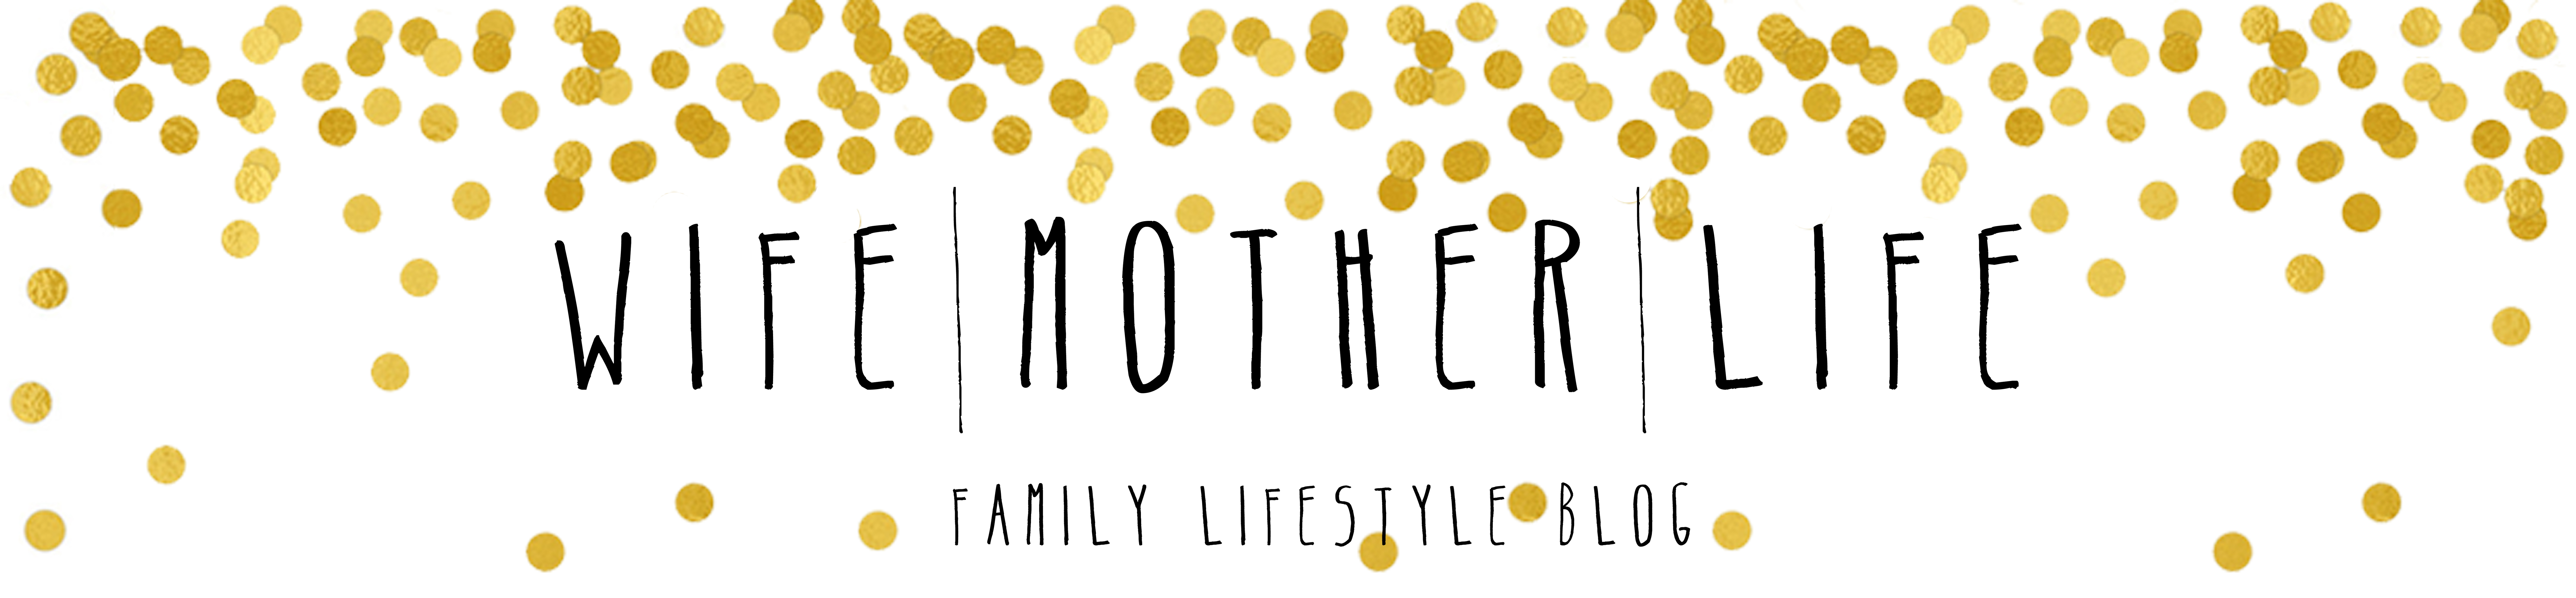 wife|mother|life